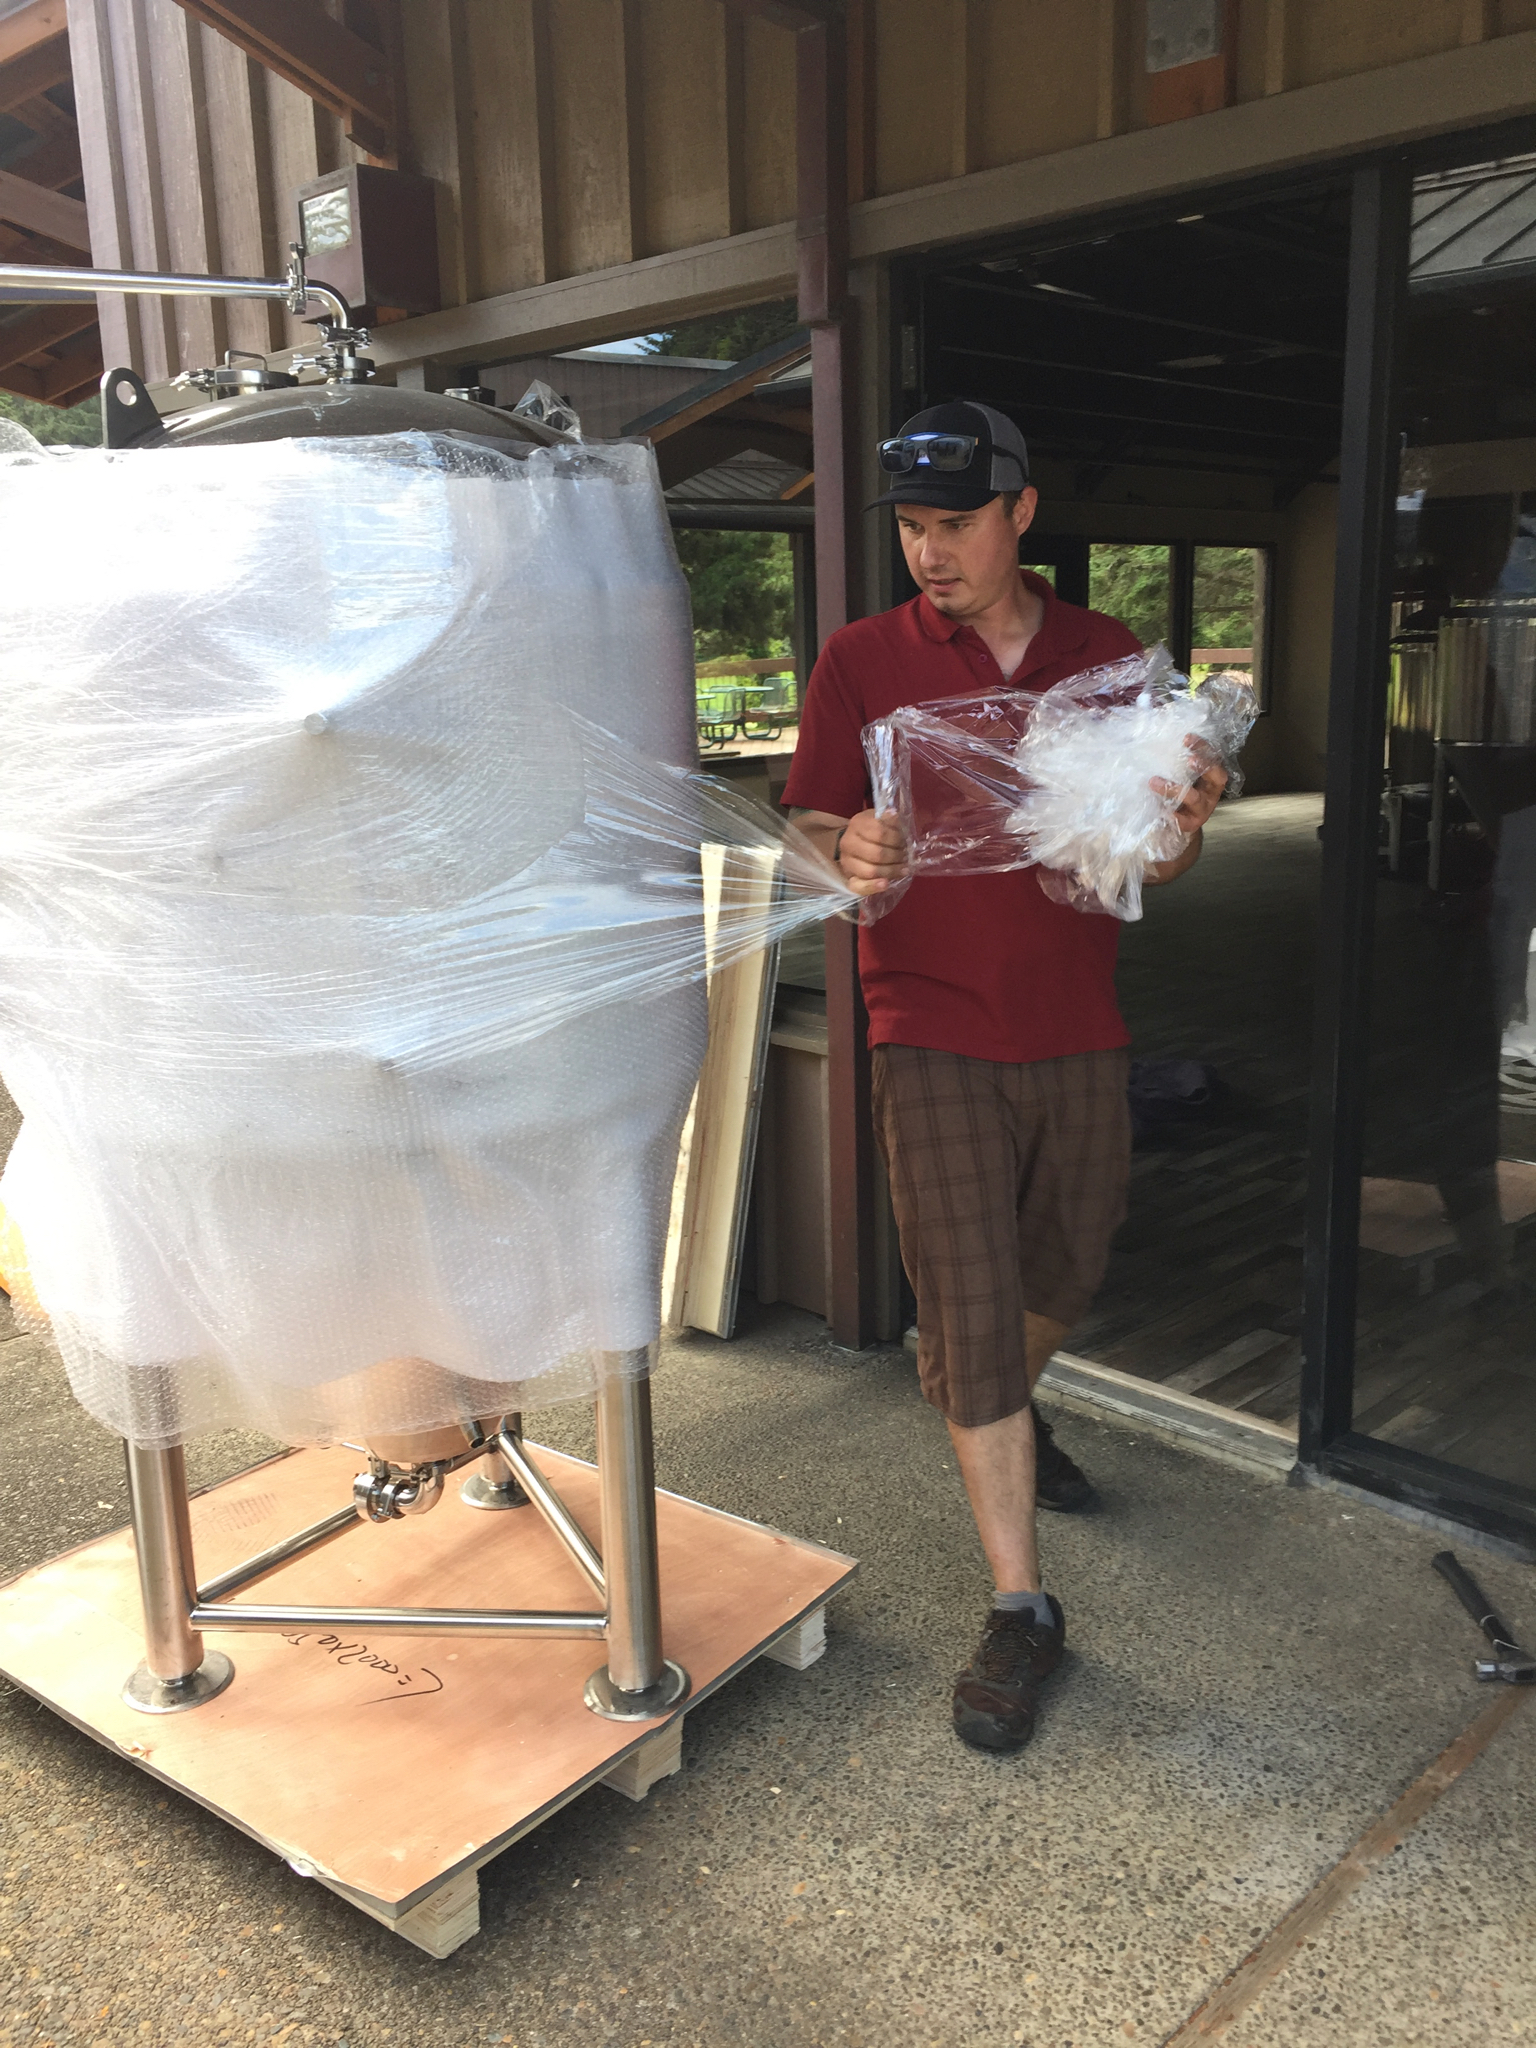 Unwrapping the new fermenter